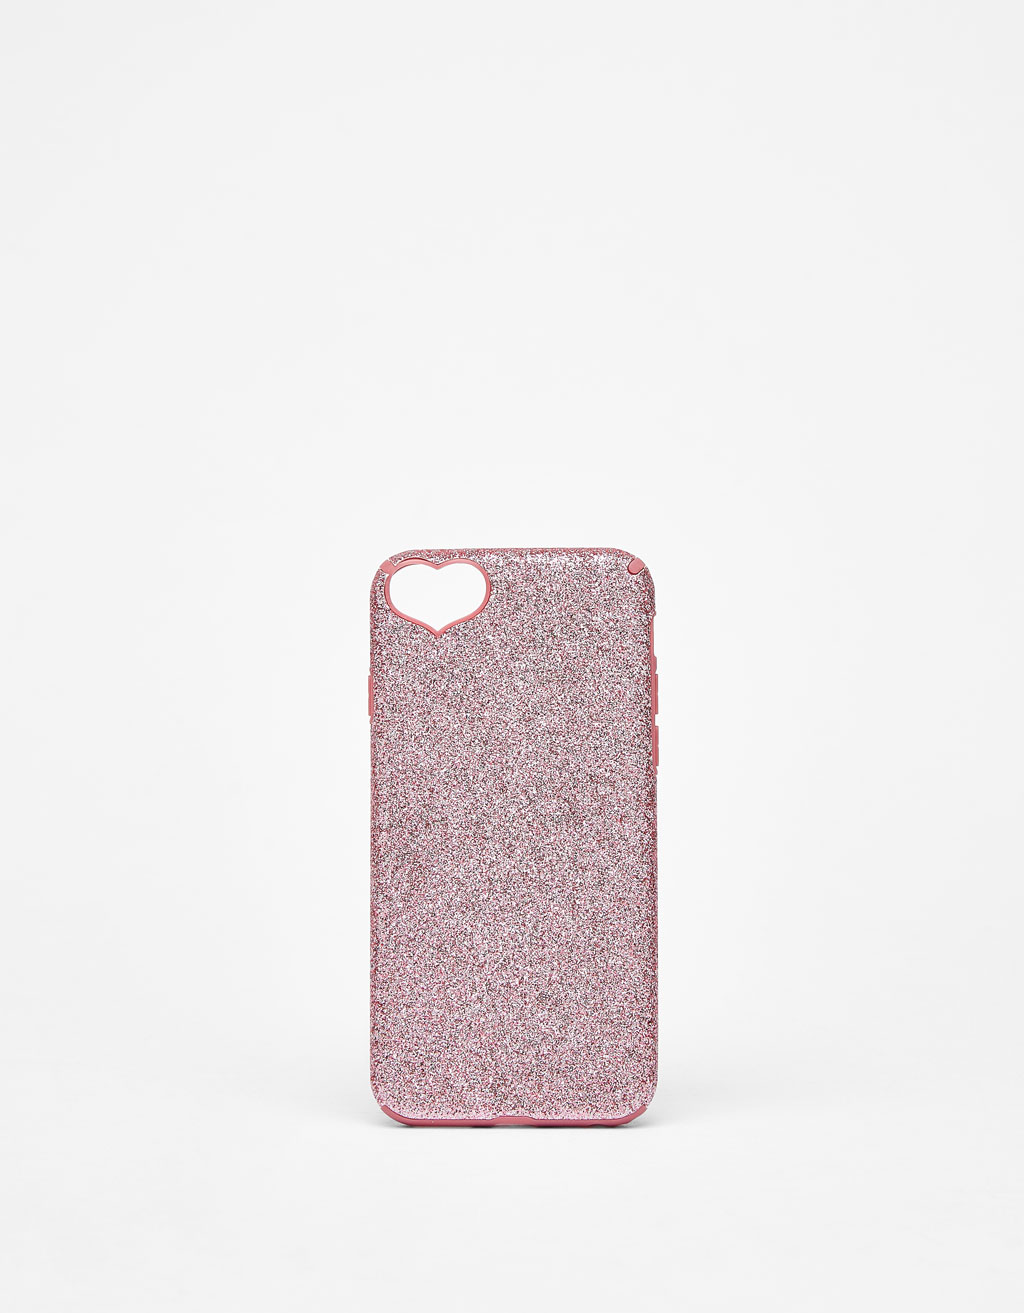 Glitter iPhone 6/6s/7 case